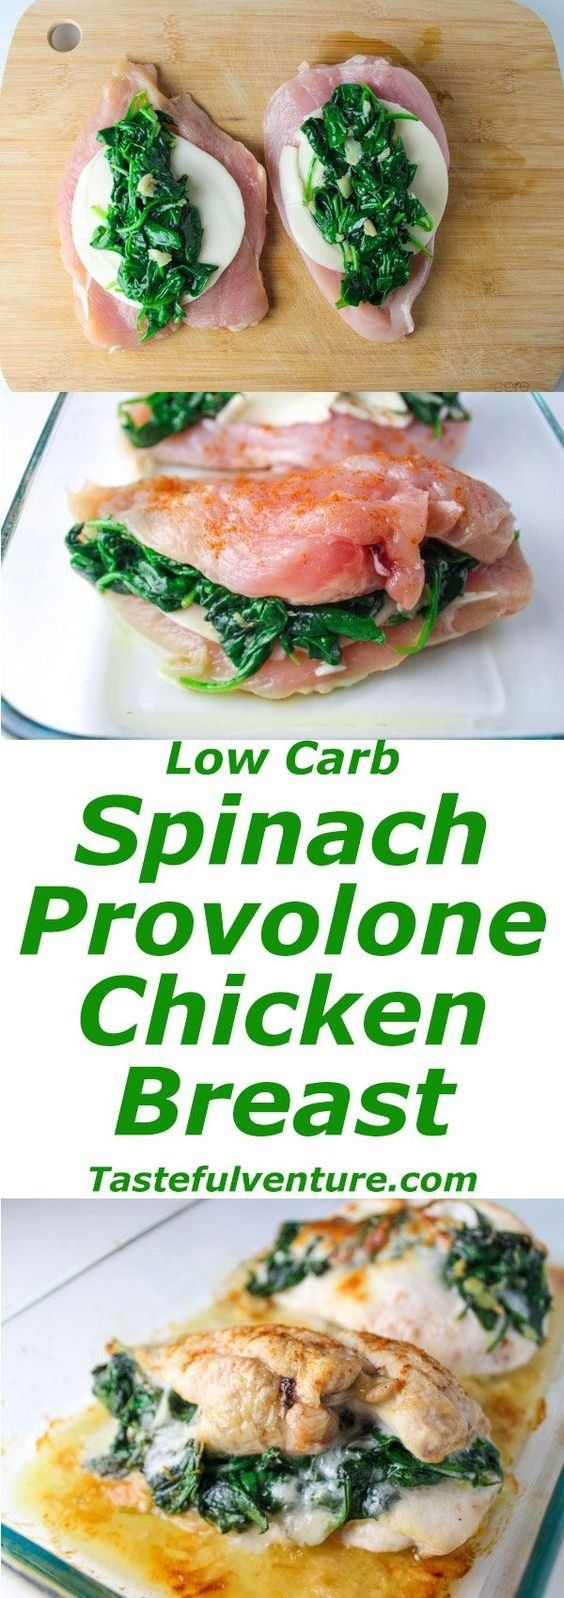 Baked Spinach Provolone Chicken Breasts